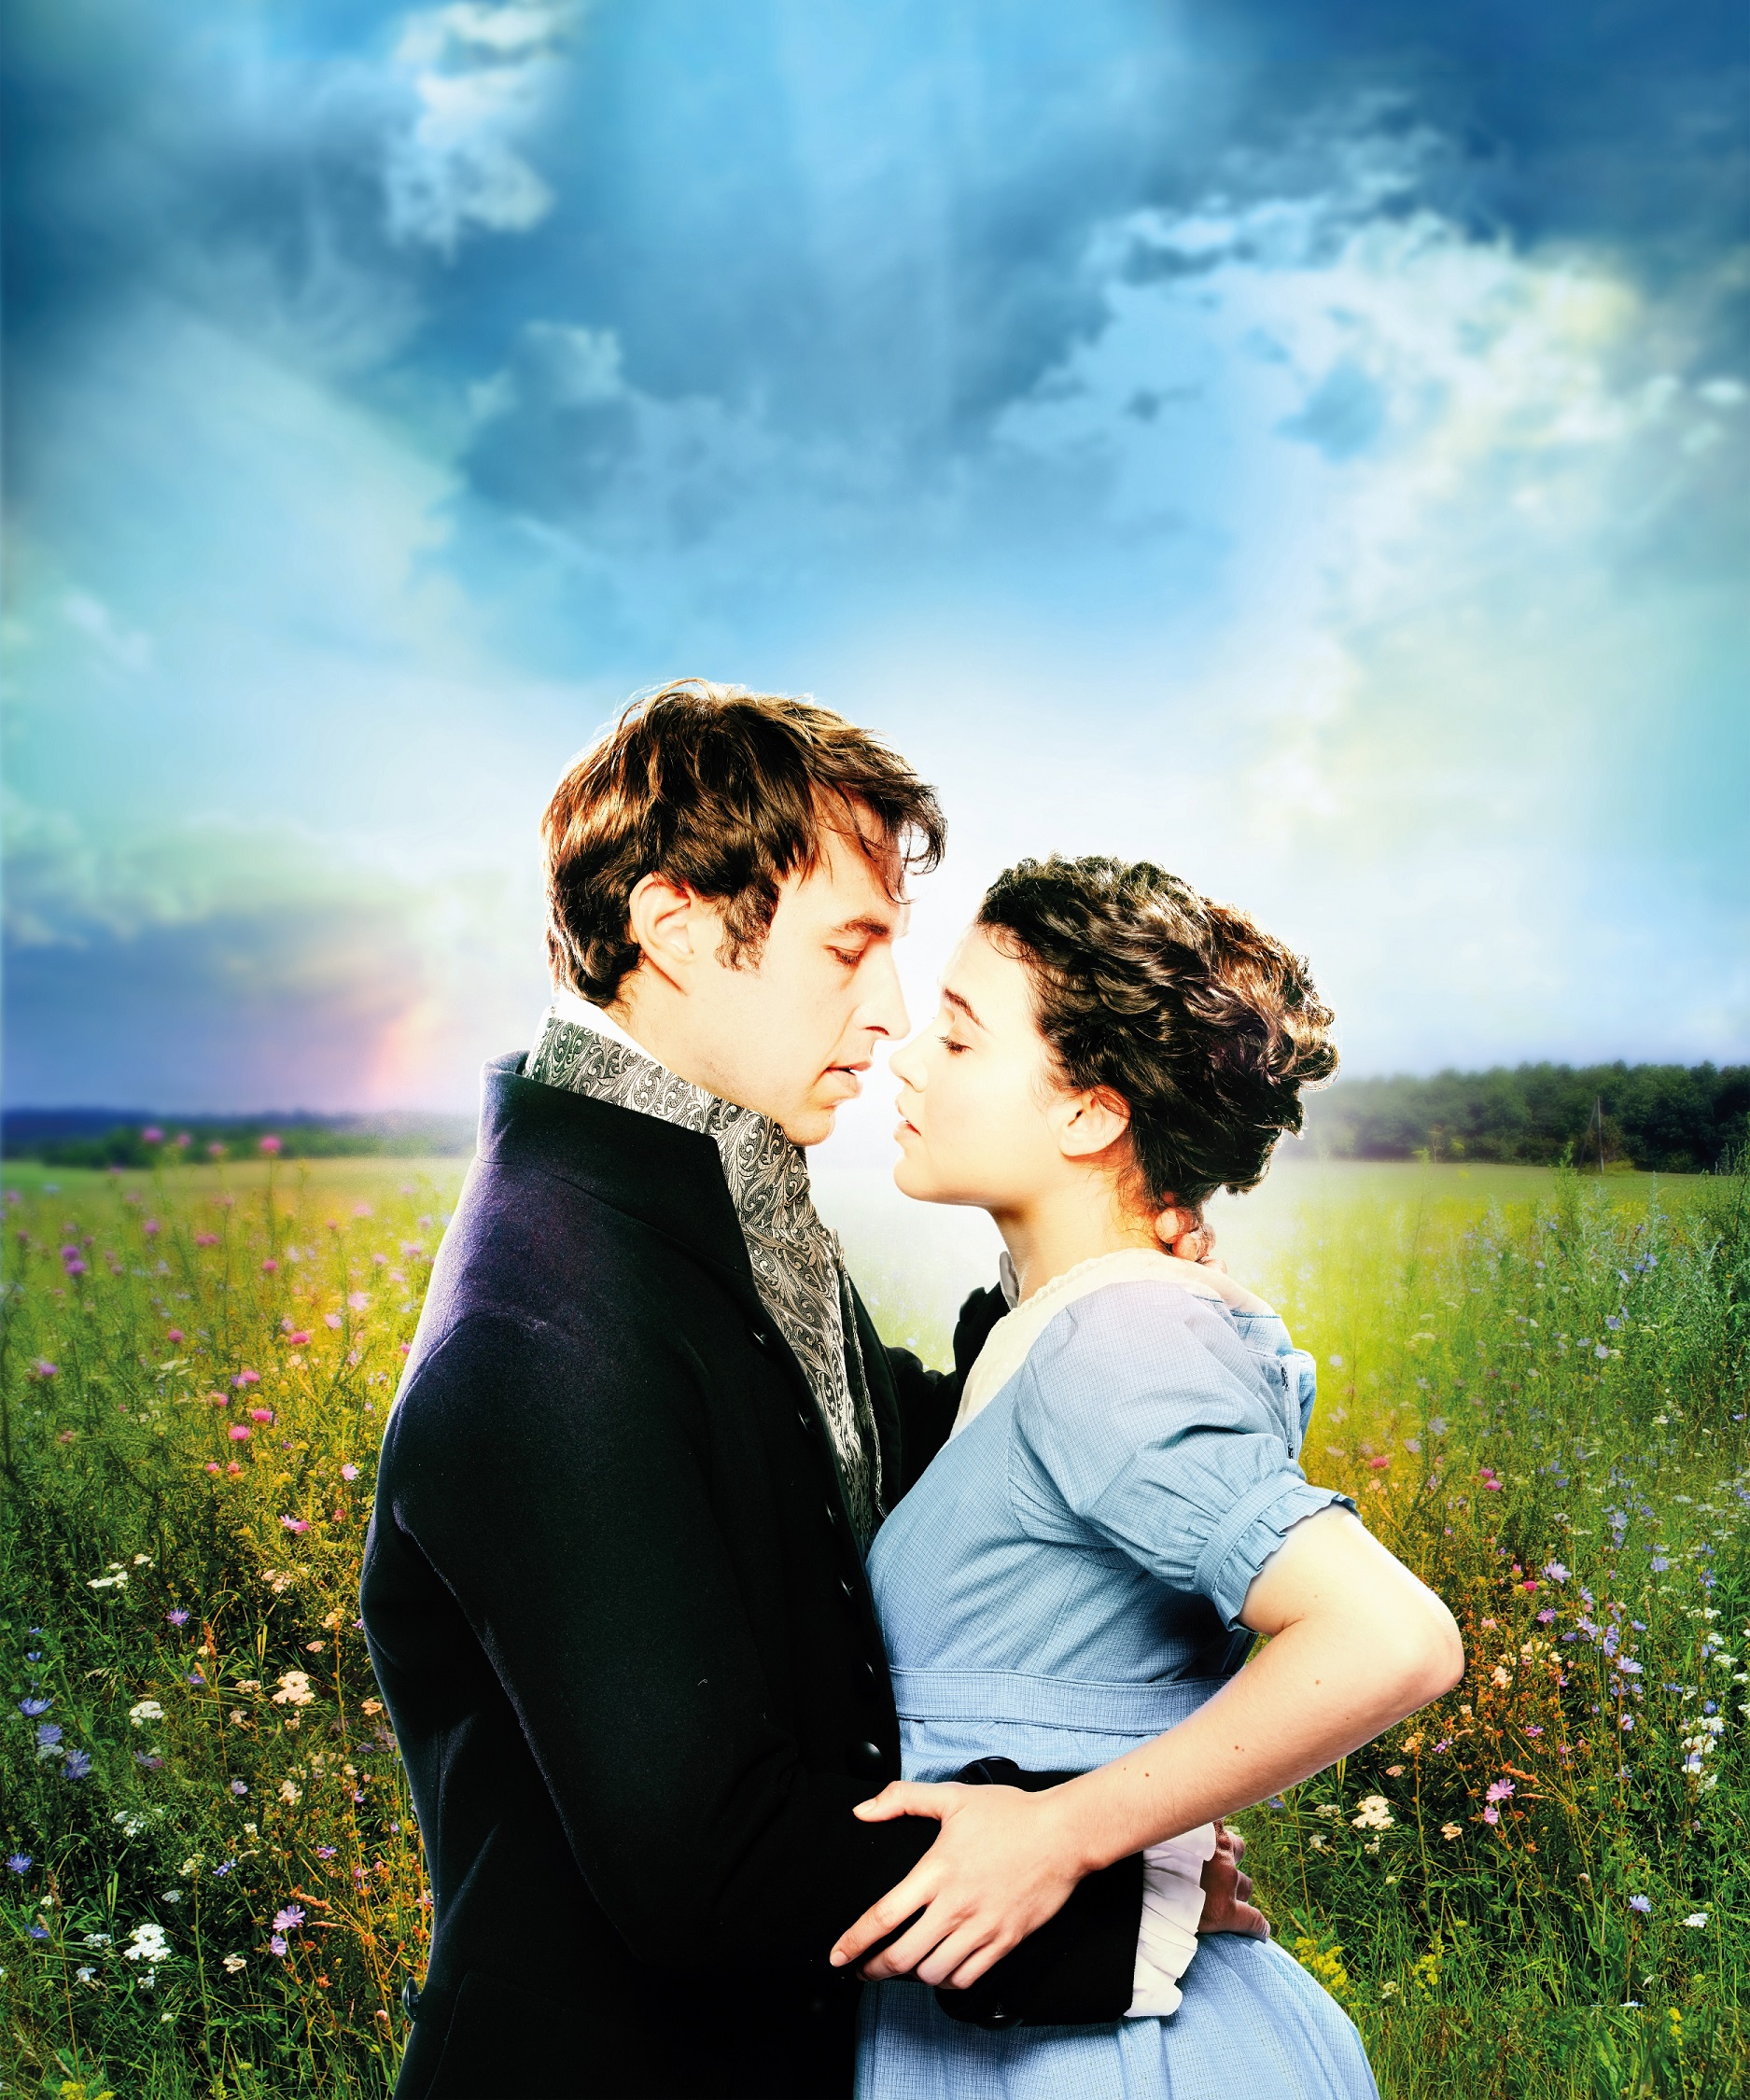 Benjamin Dilloway as Mr Darcy and Tafline Steen as Elizabeth Bennet in Pride and Prejudice. Photo Simon Turtle. Artwork Feast Creative